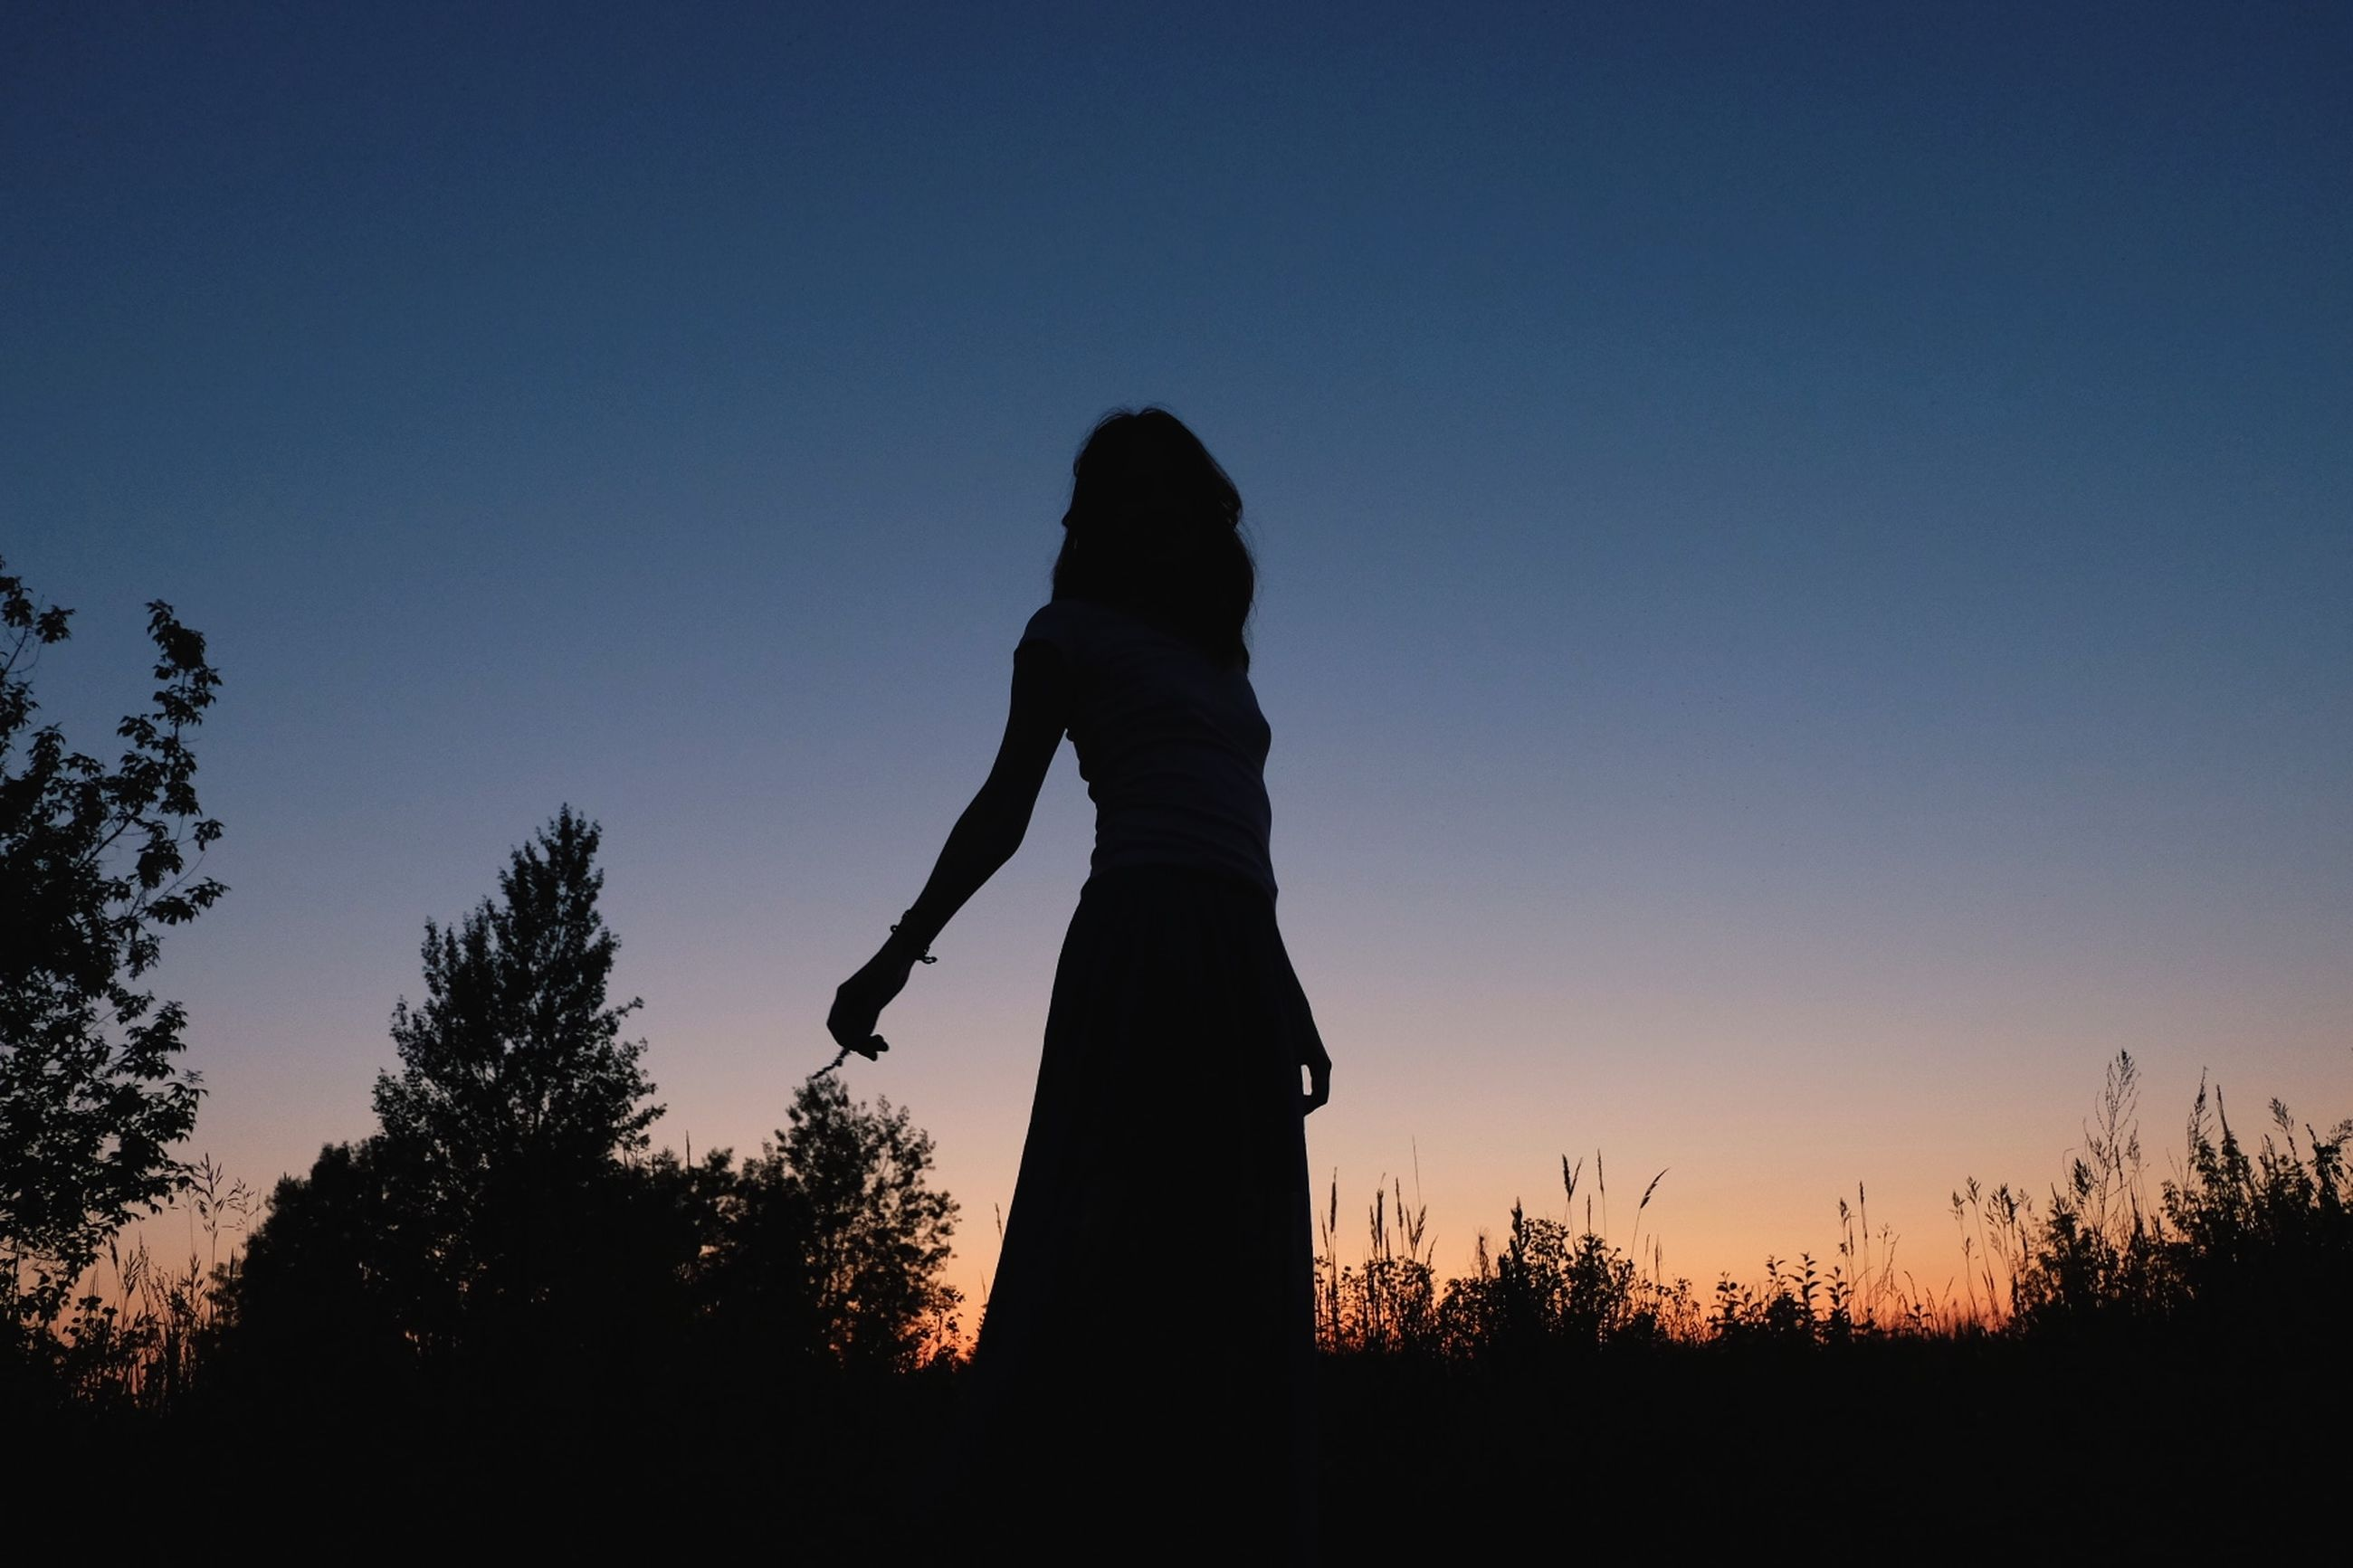 sky, silhouette, one person, real people, standing, lifestyles, plant, sunset, clear sky, women, tree, copy space, nature, tranquility, three quarter length, adult, leisure activity, land, field, hairstyle